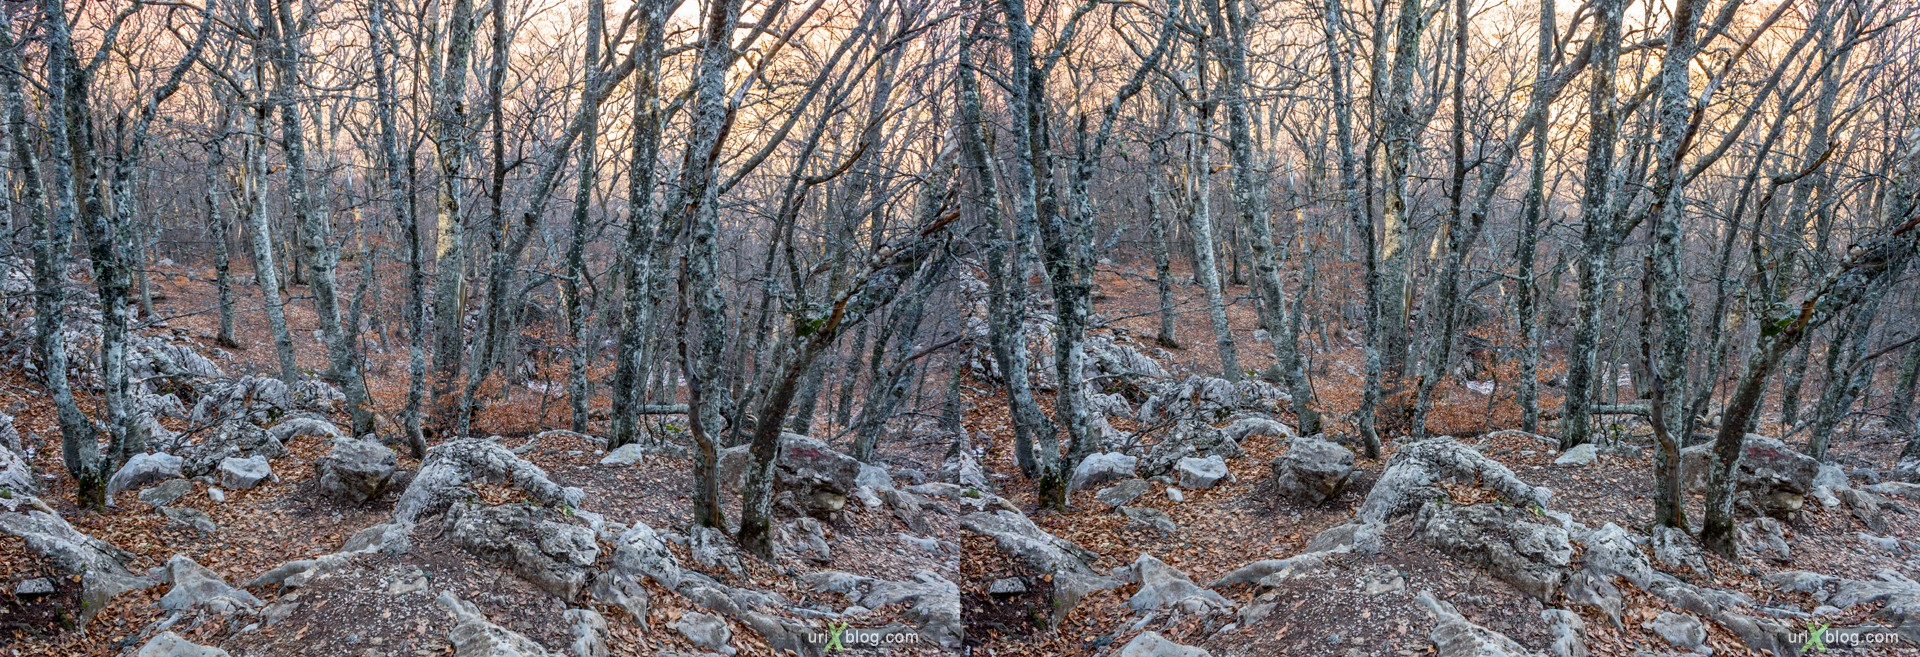 2012, Ai-Petri, mountains, Crimea, Russia, Ukraine, forest, winter, 3D, stereo pair, cross-eyed, crossview, cross view stereo pair, stereoscopic